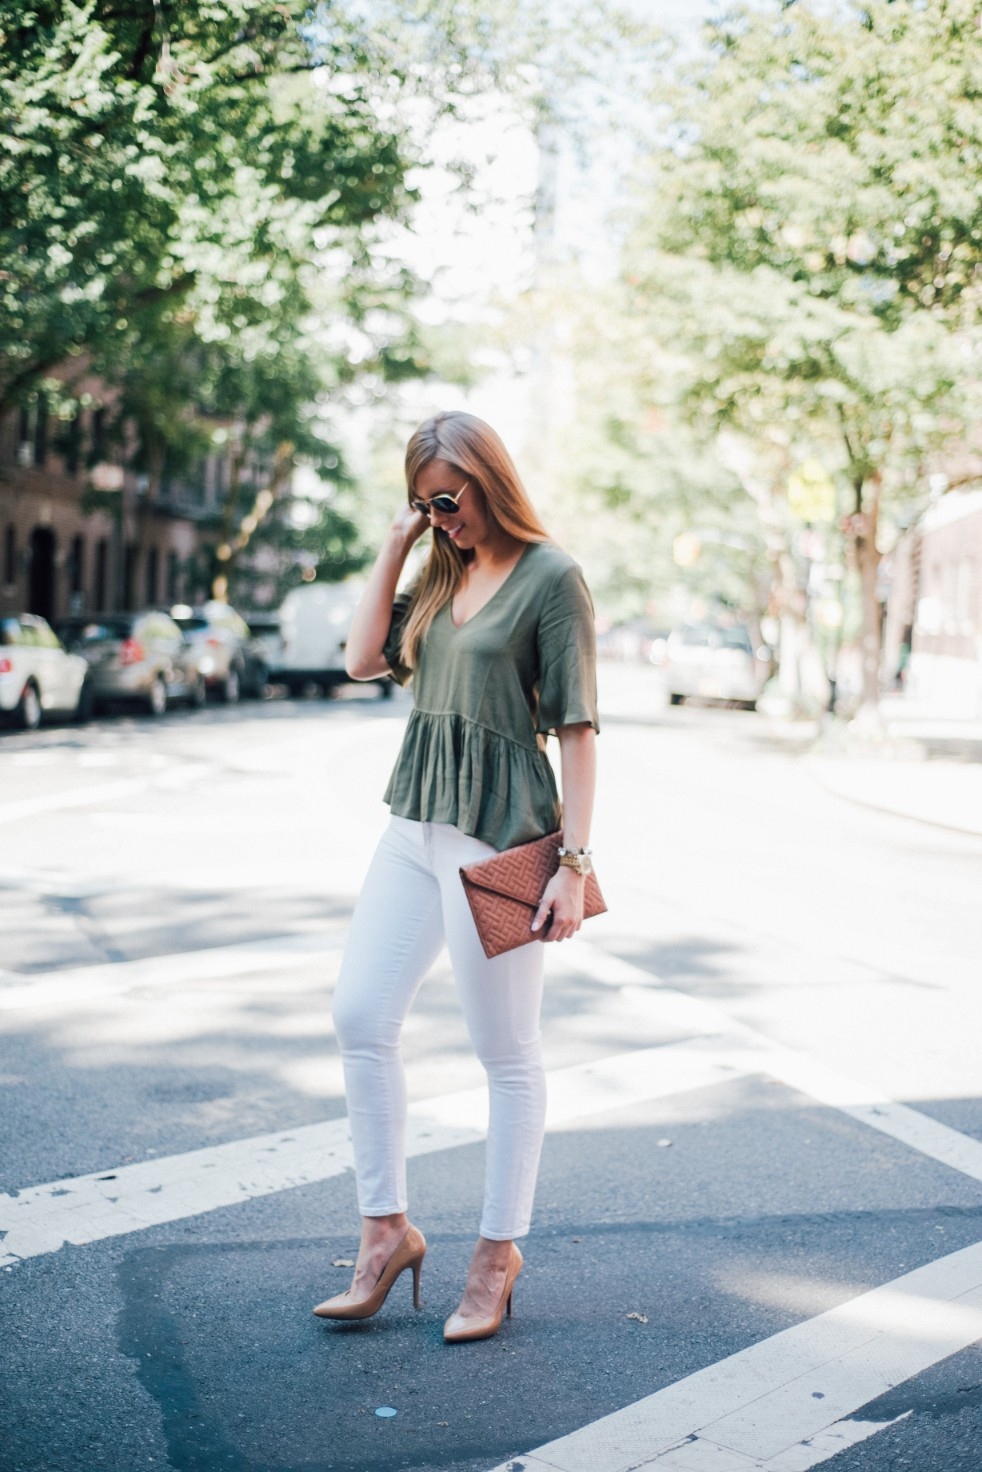 white jeans and peplum top west village fashion new york fashion blogger lauren slade style elixir blog spring outfit ideas 15 - Style Sessions - White Jeans and Peplum Top in the West Village featured by popular US style blogger, Style Elixir